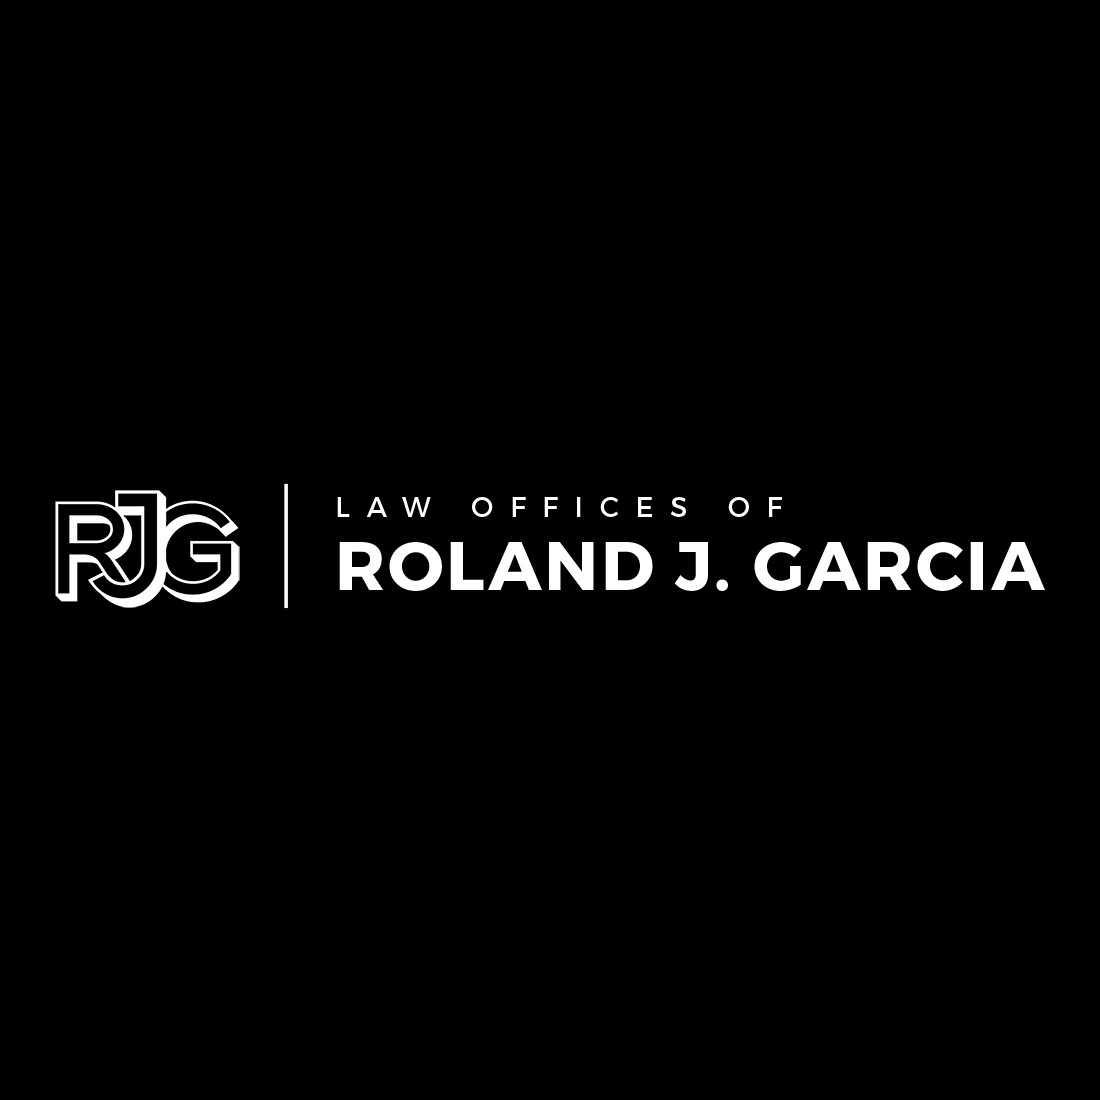 Law Office of Roland J. Garcia Profile Picture